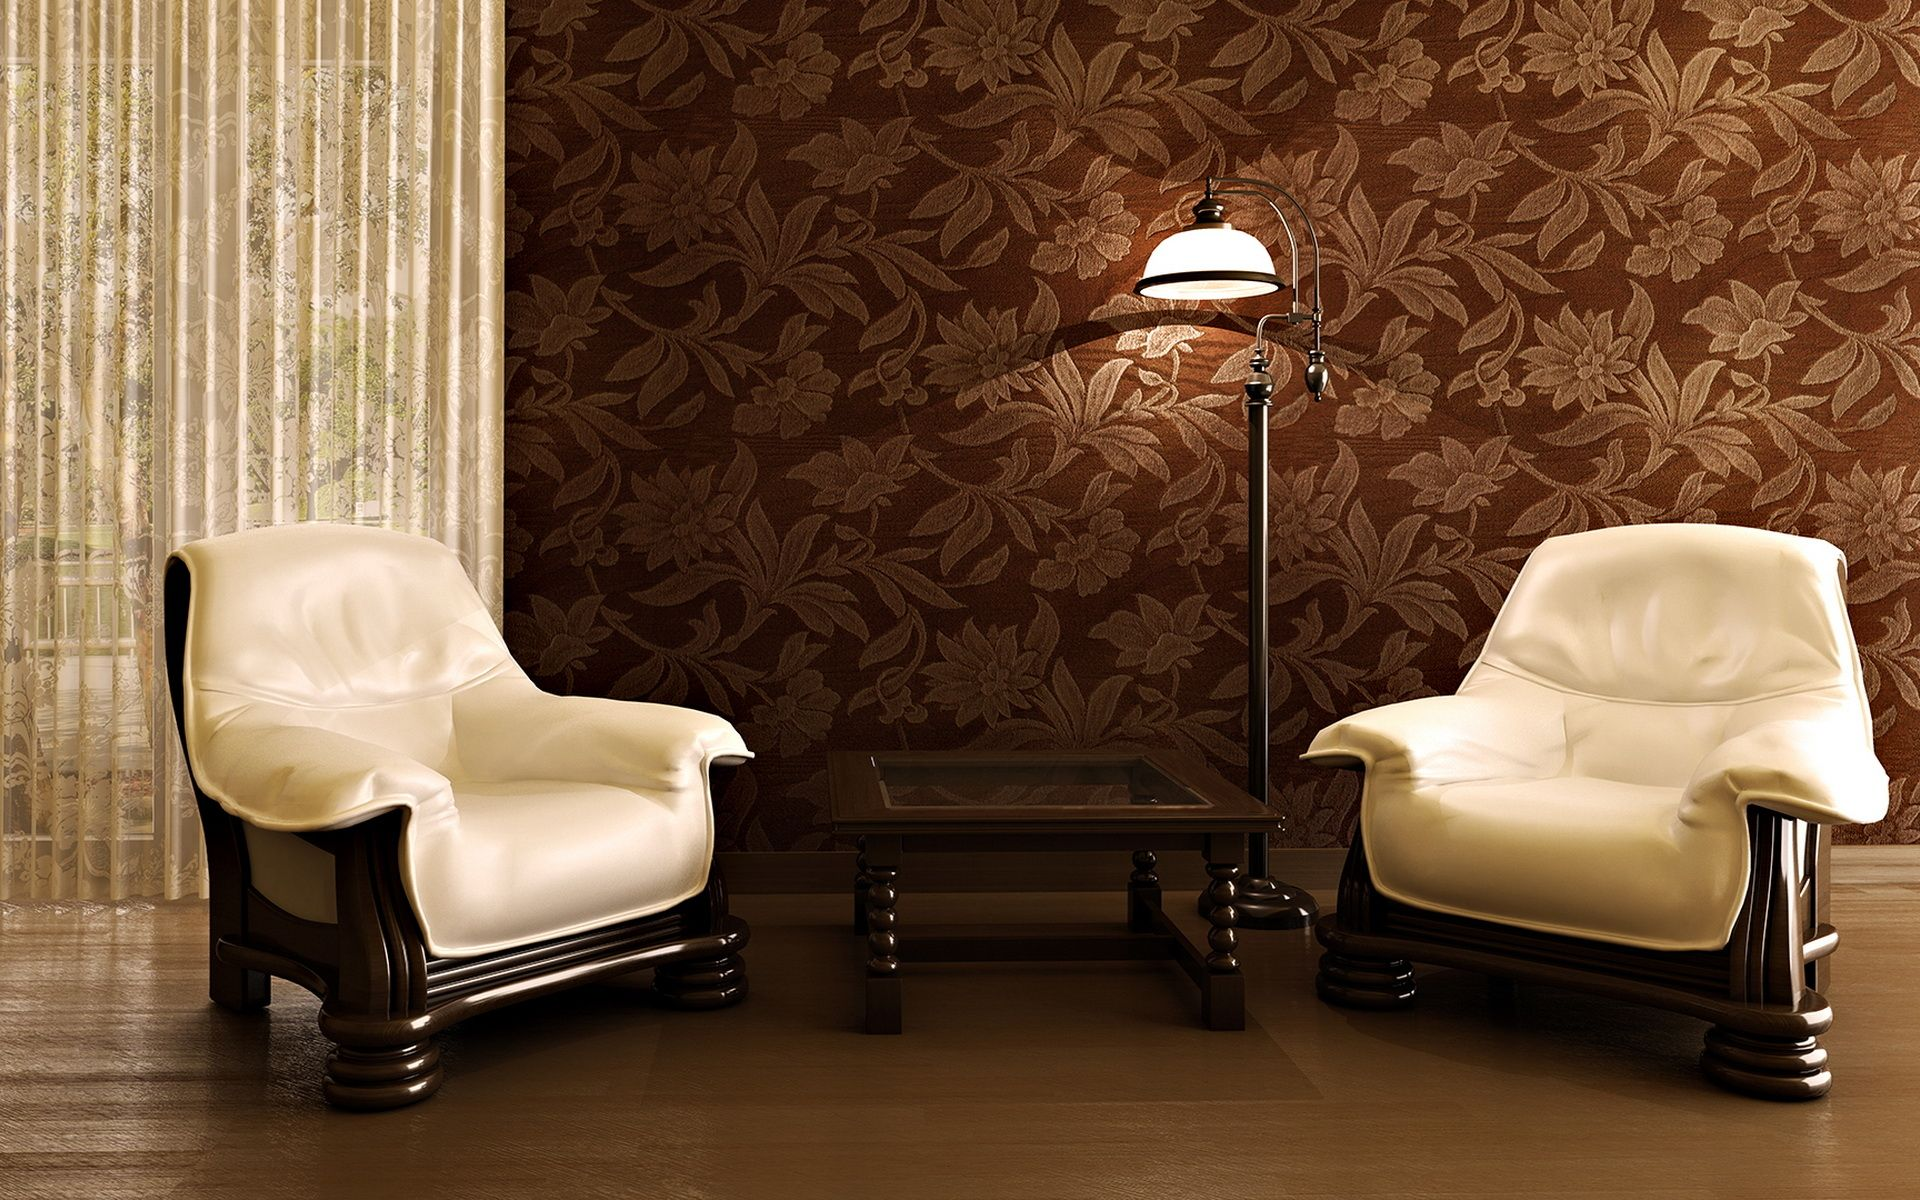 Wallpapers For Living Room Design Ideas In Uk Best Living Room Wallpaper Wallpaper Living Room Elegant Living Room Wallpaper